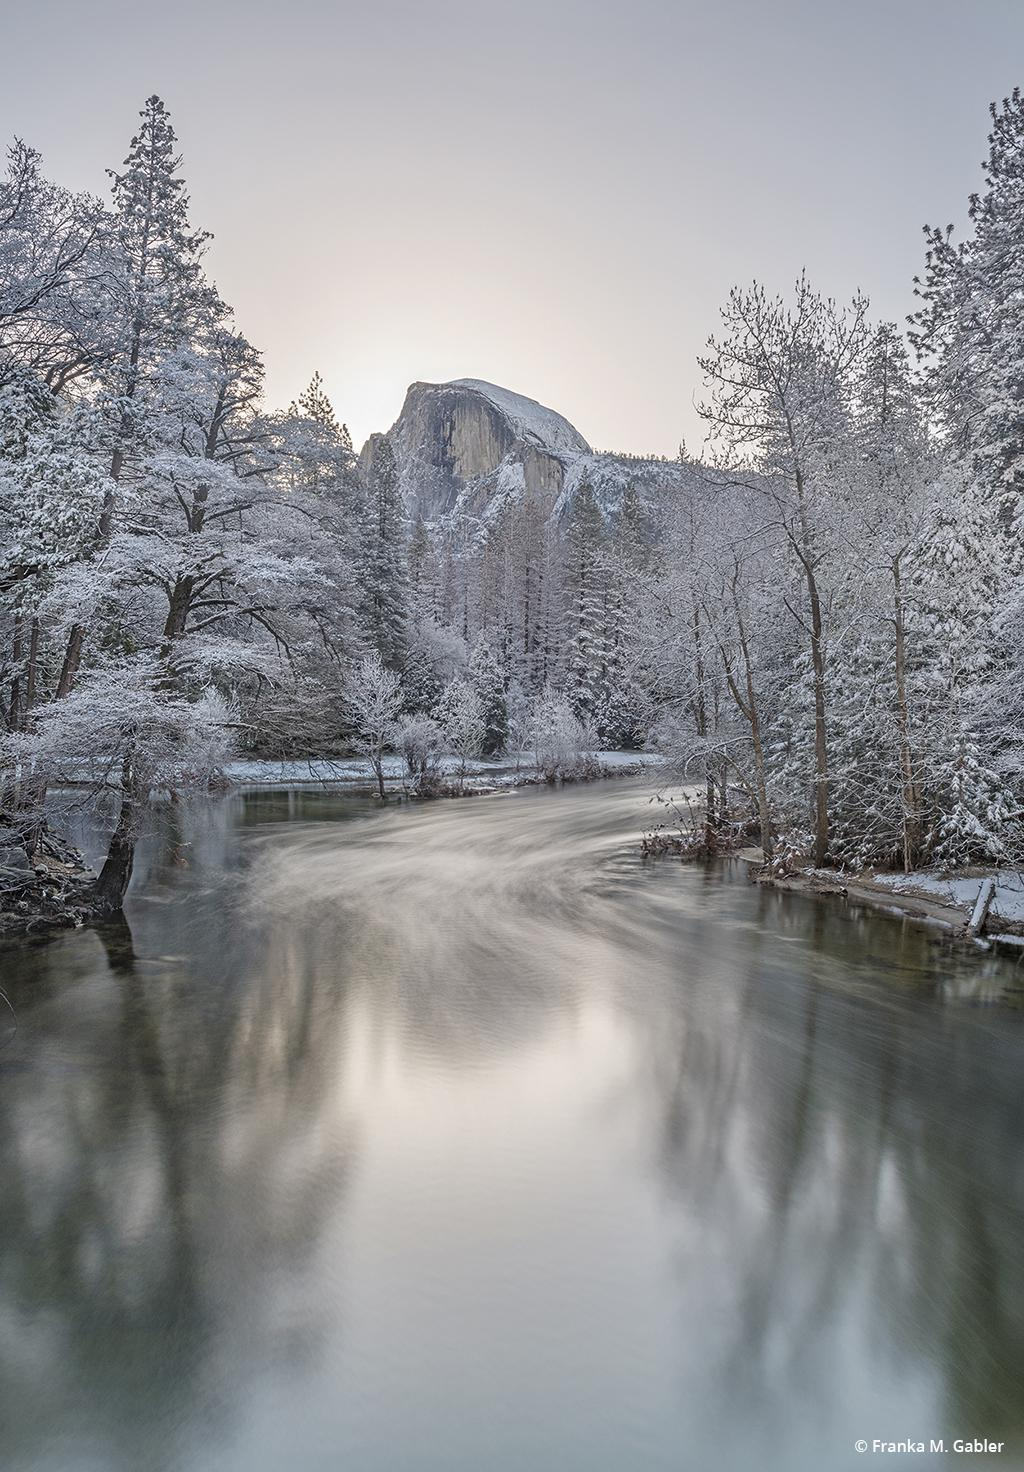 """Today's Photo Of The Day is """"Waiting for the Sunrise, Yosemite Valley"""" by Franka M. Gabler. Location: California."""